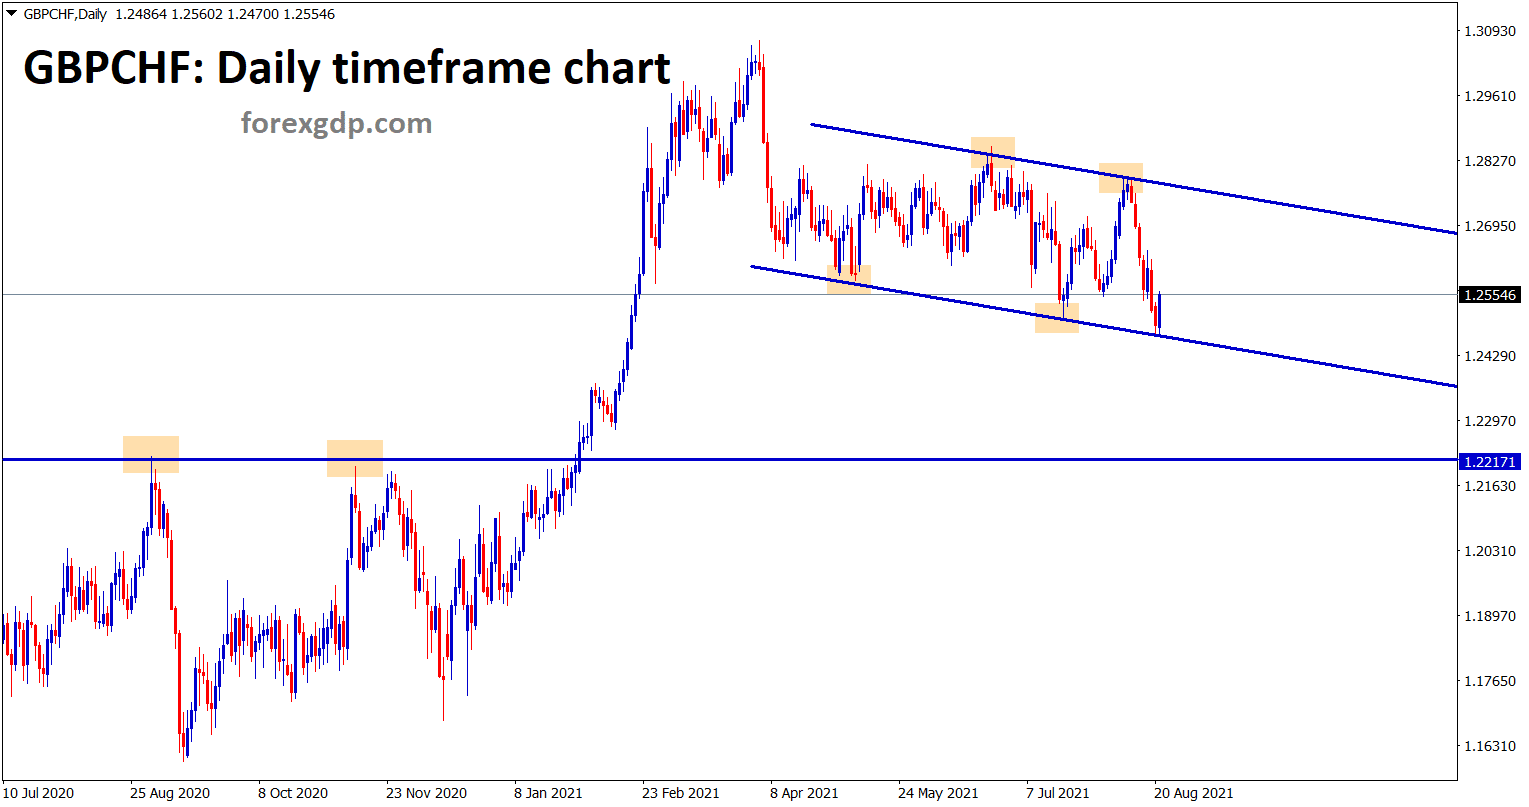 GBPCHF is moving between the minor channel ranges